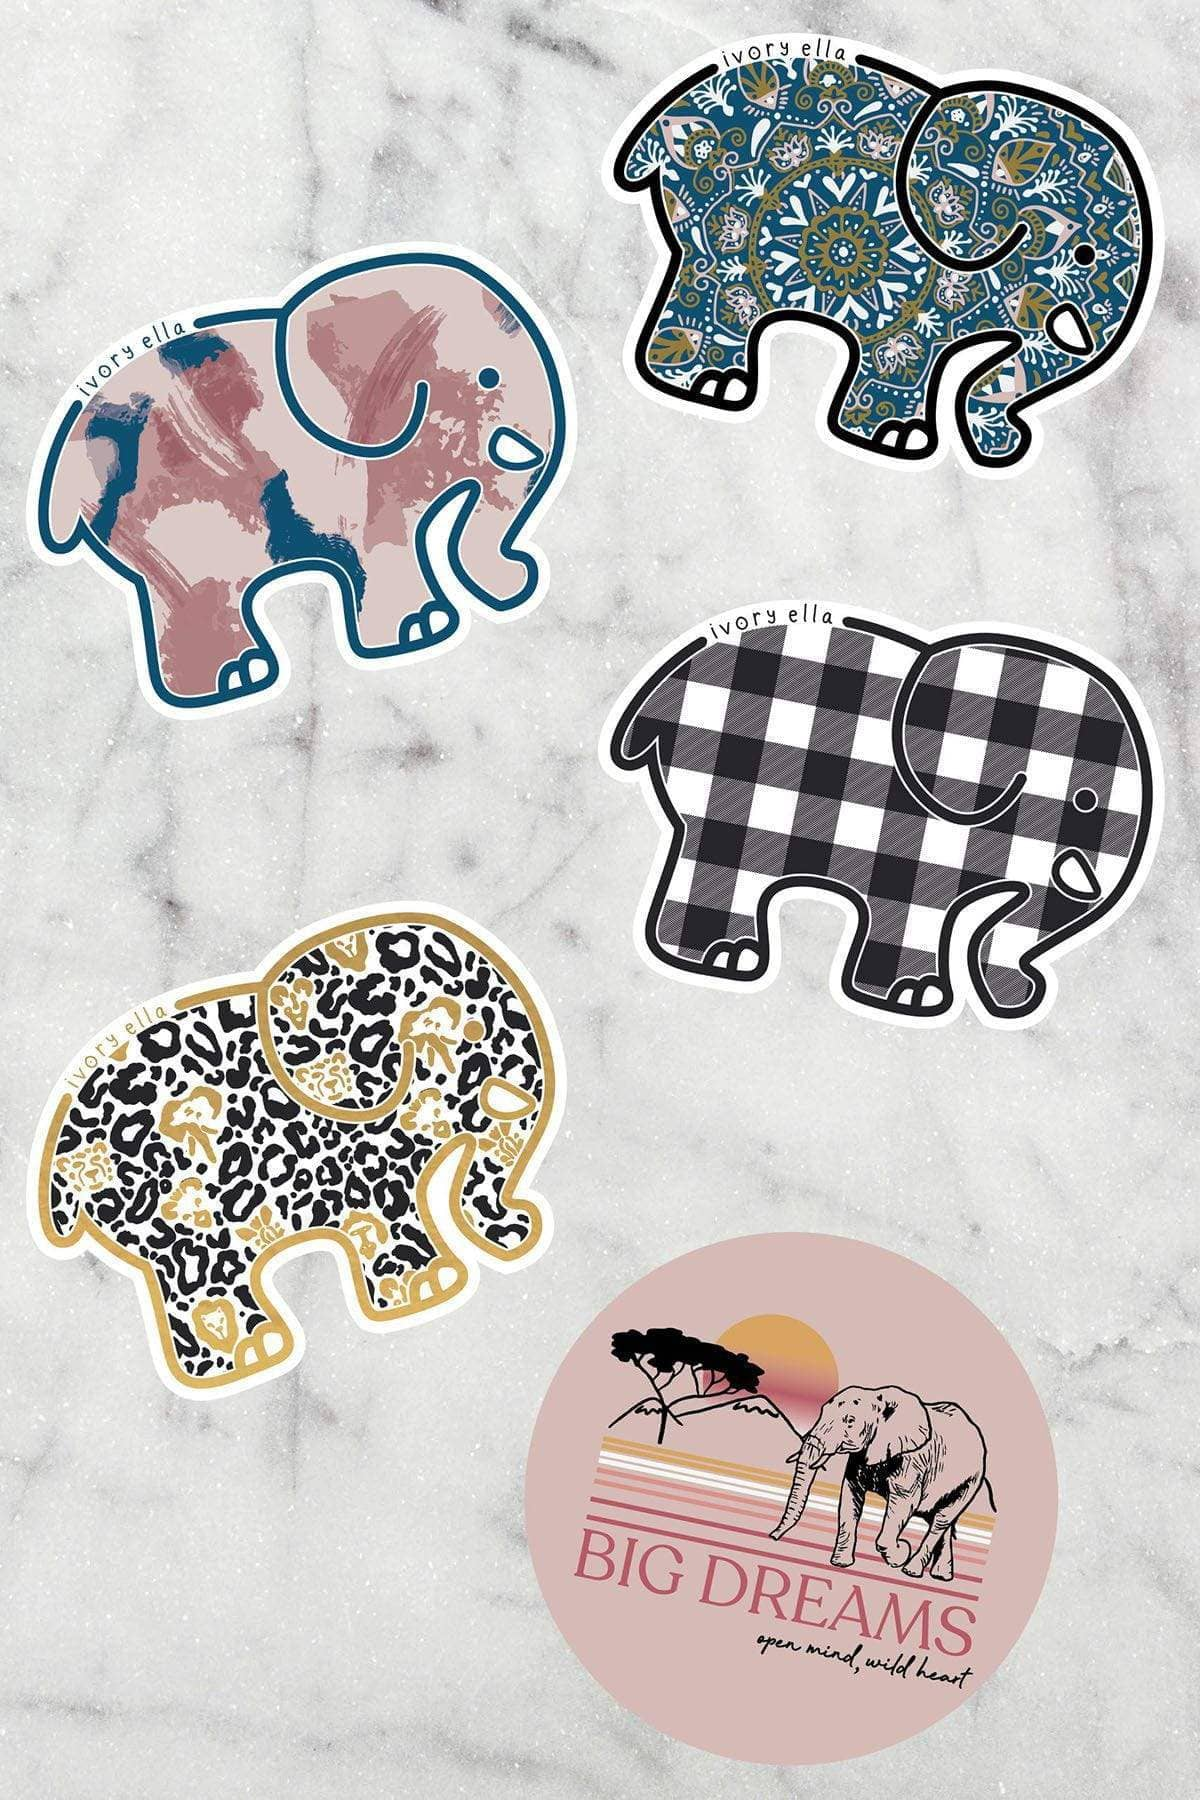 Ivory Ella Accessories December Sticker Pack